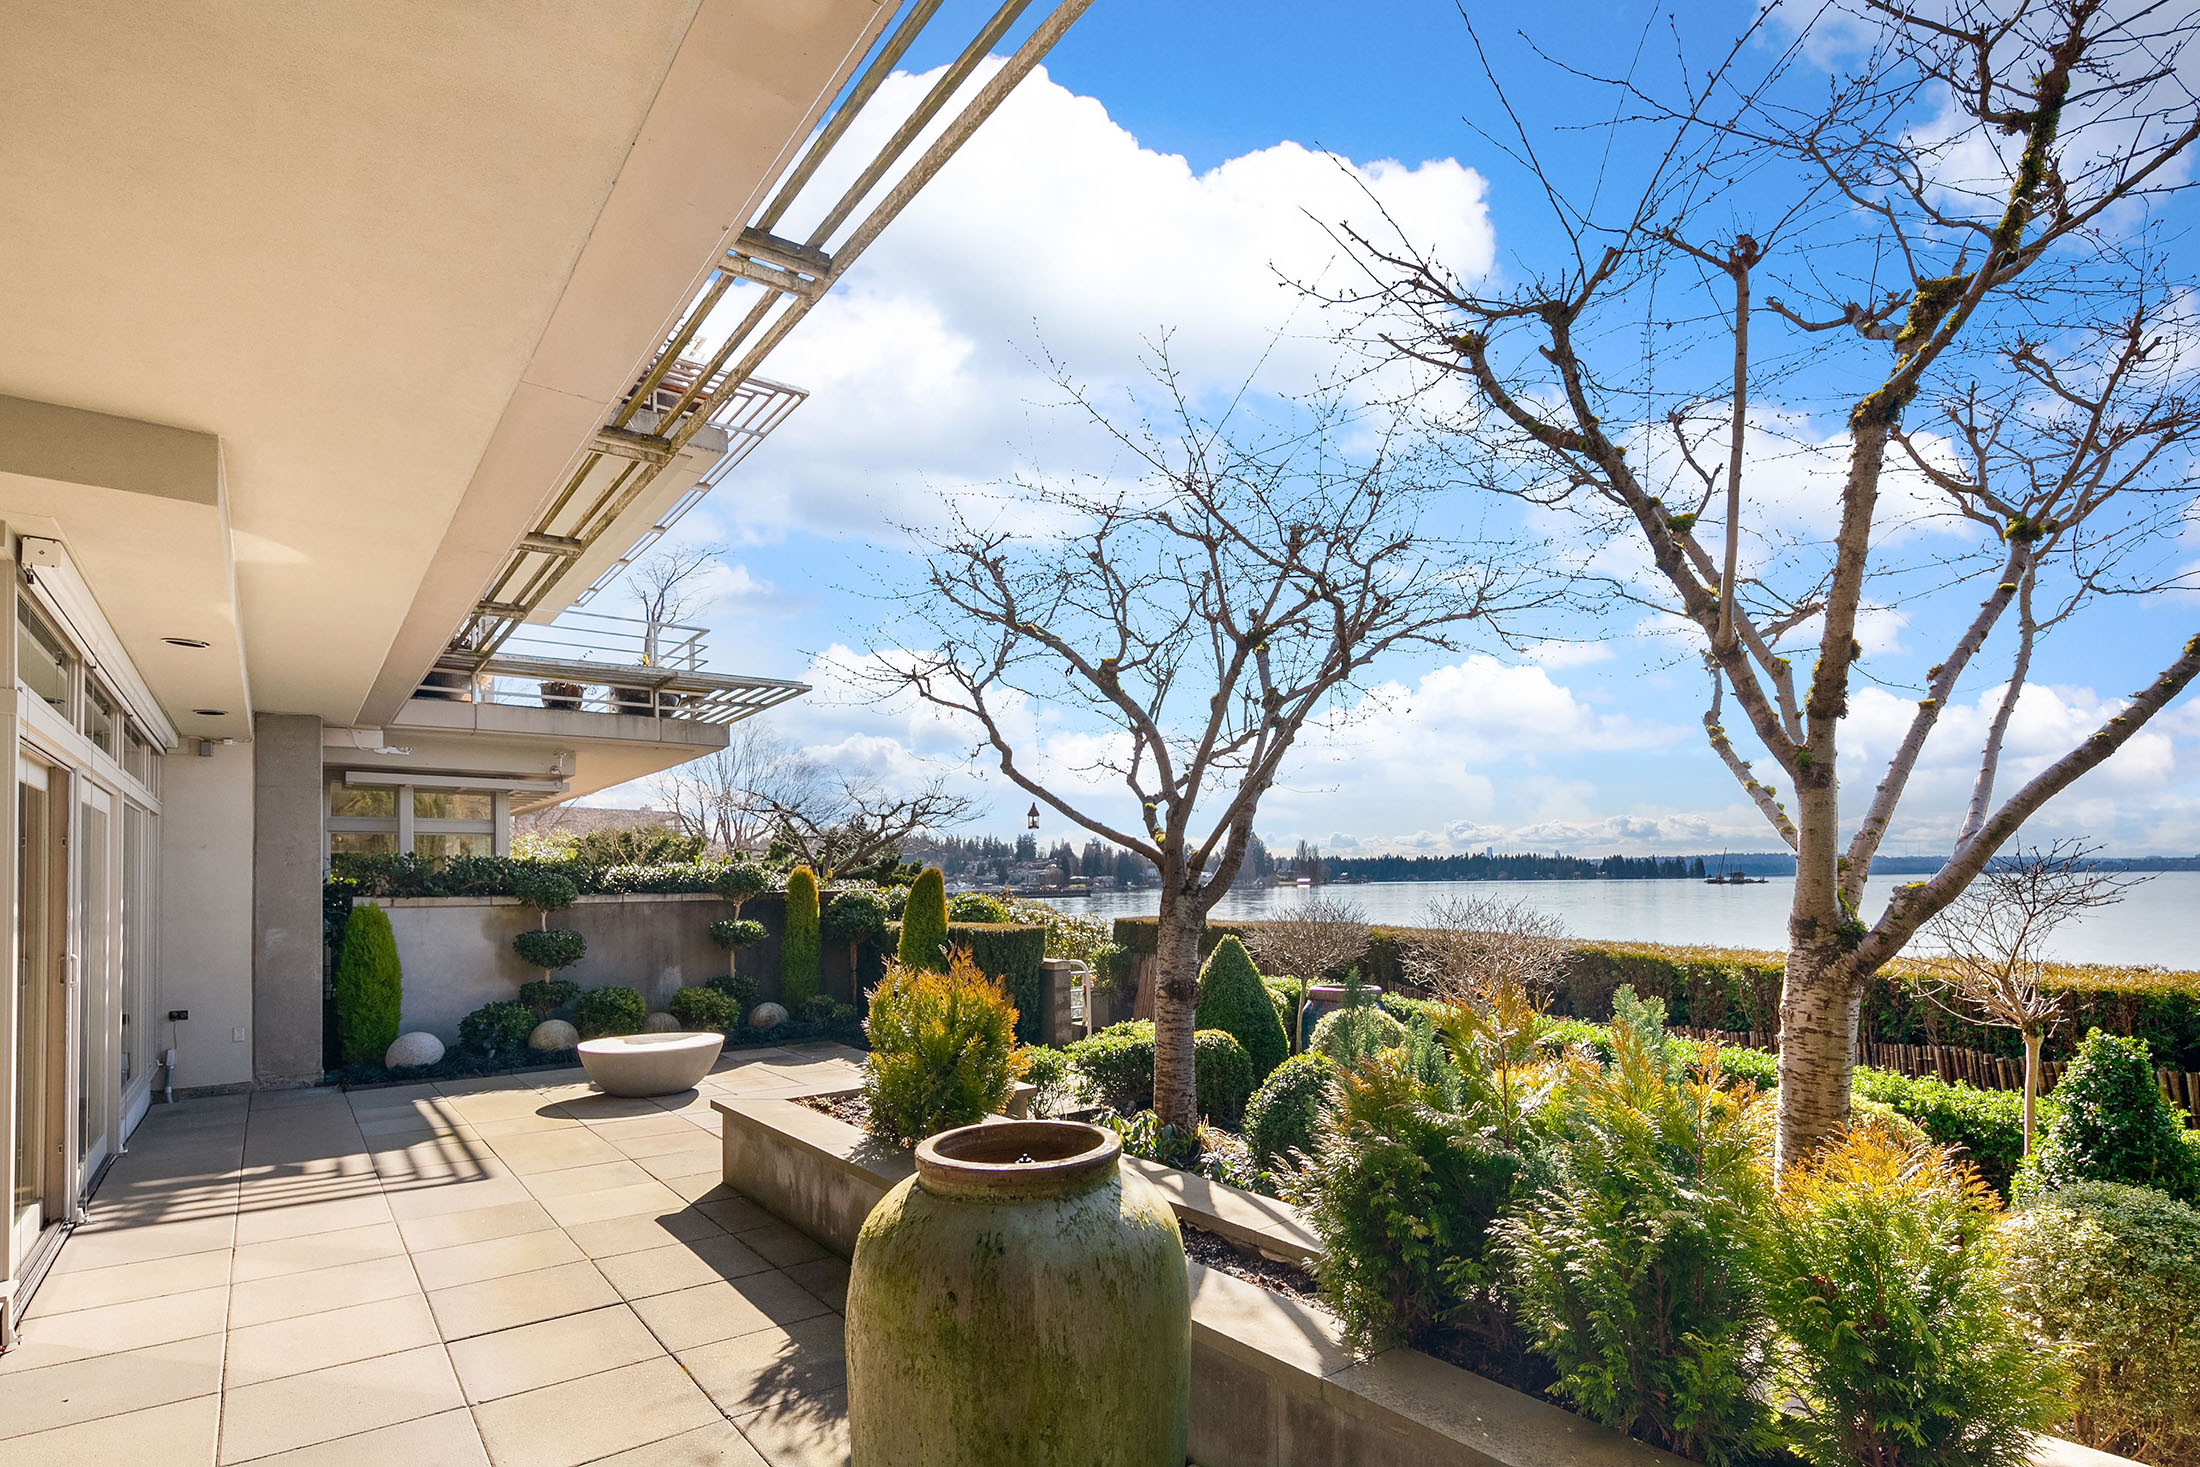 By the Numbers - The average and median waterfront selling prices at Kirkland were $1.64 million and $1.14 million, respectively.